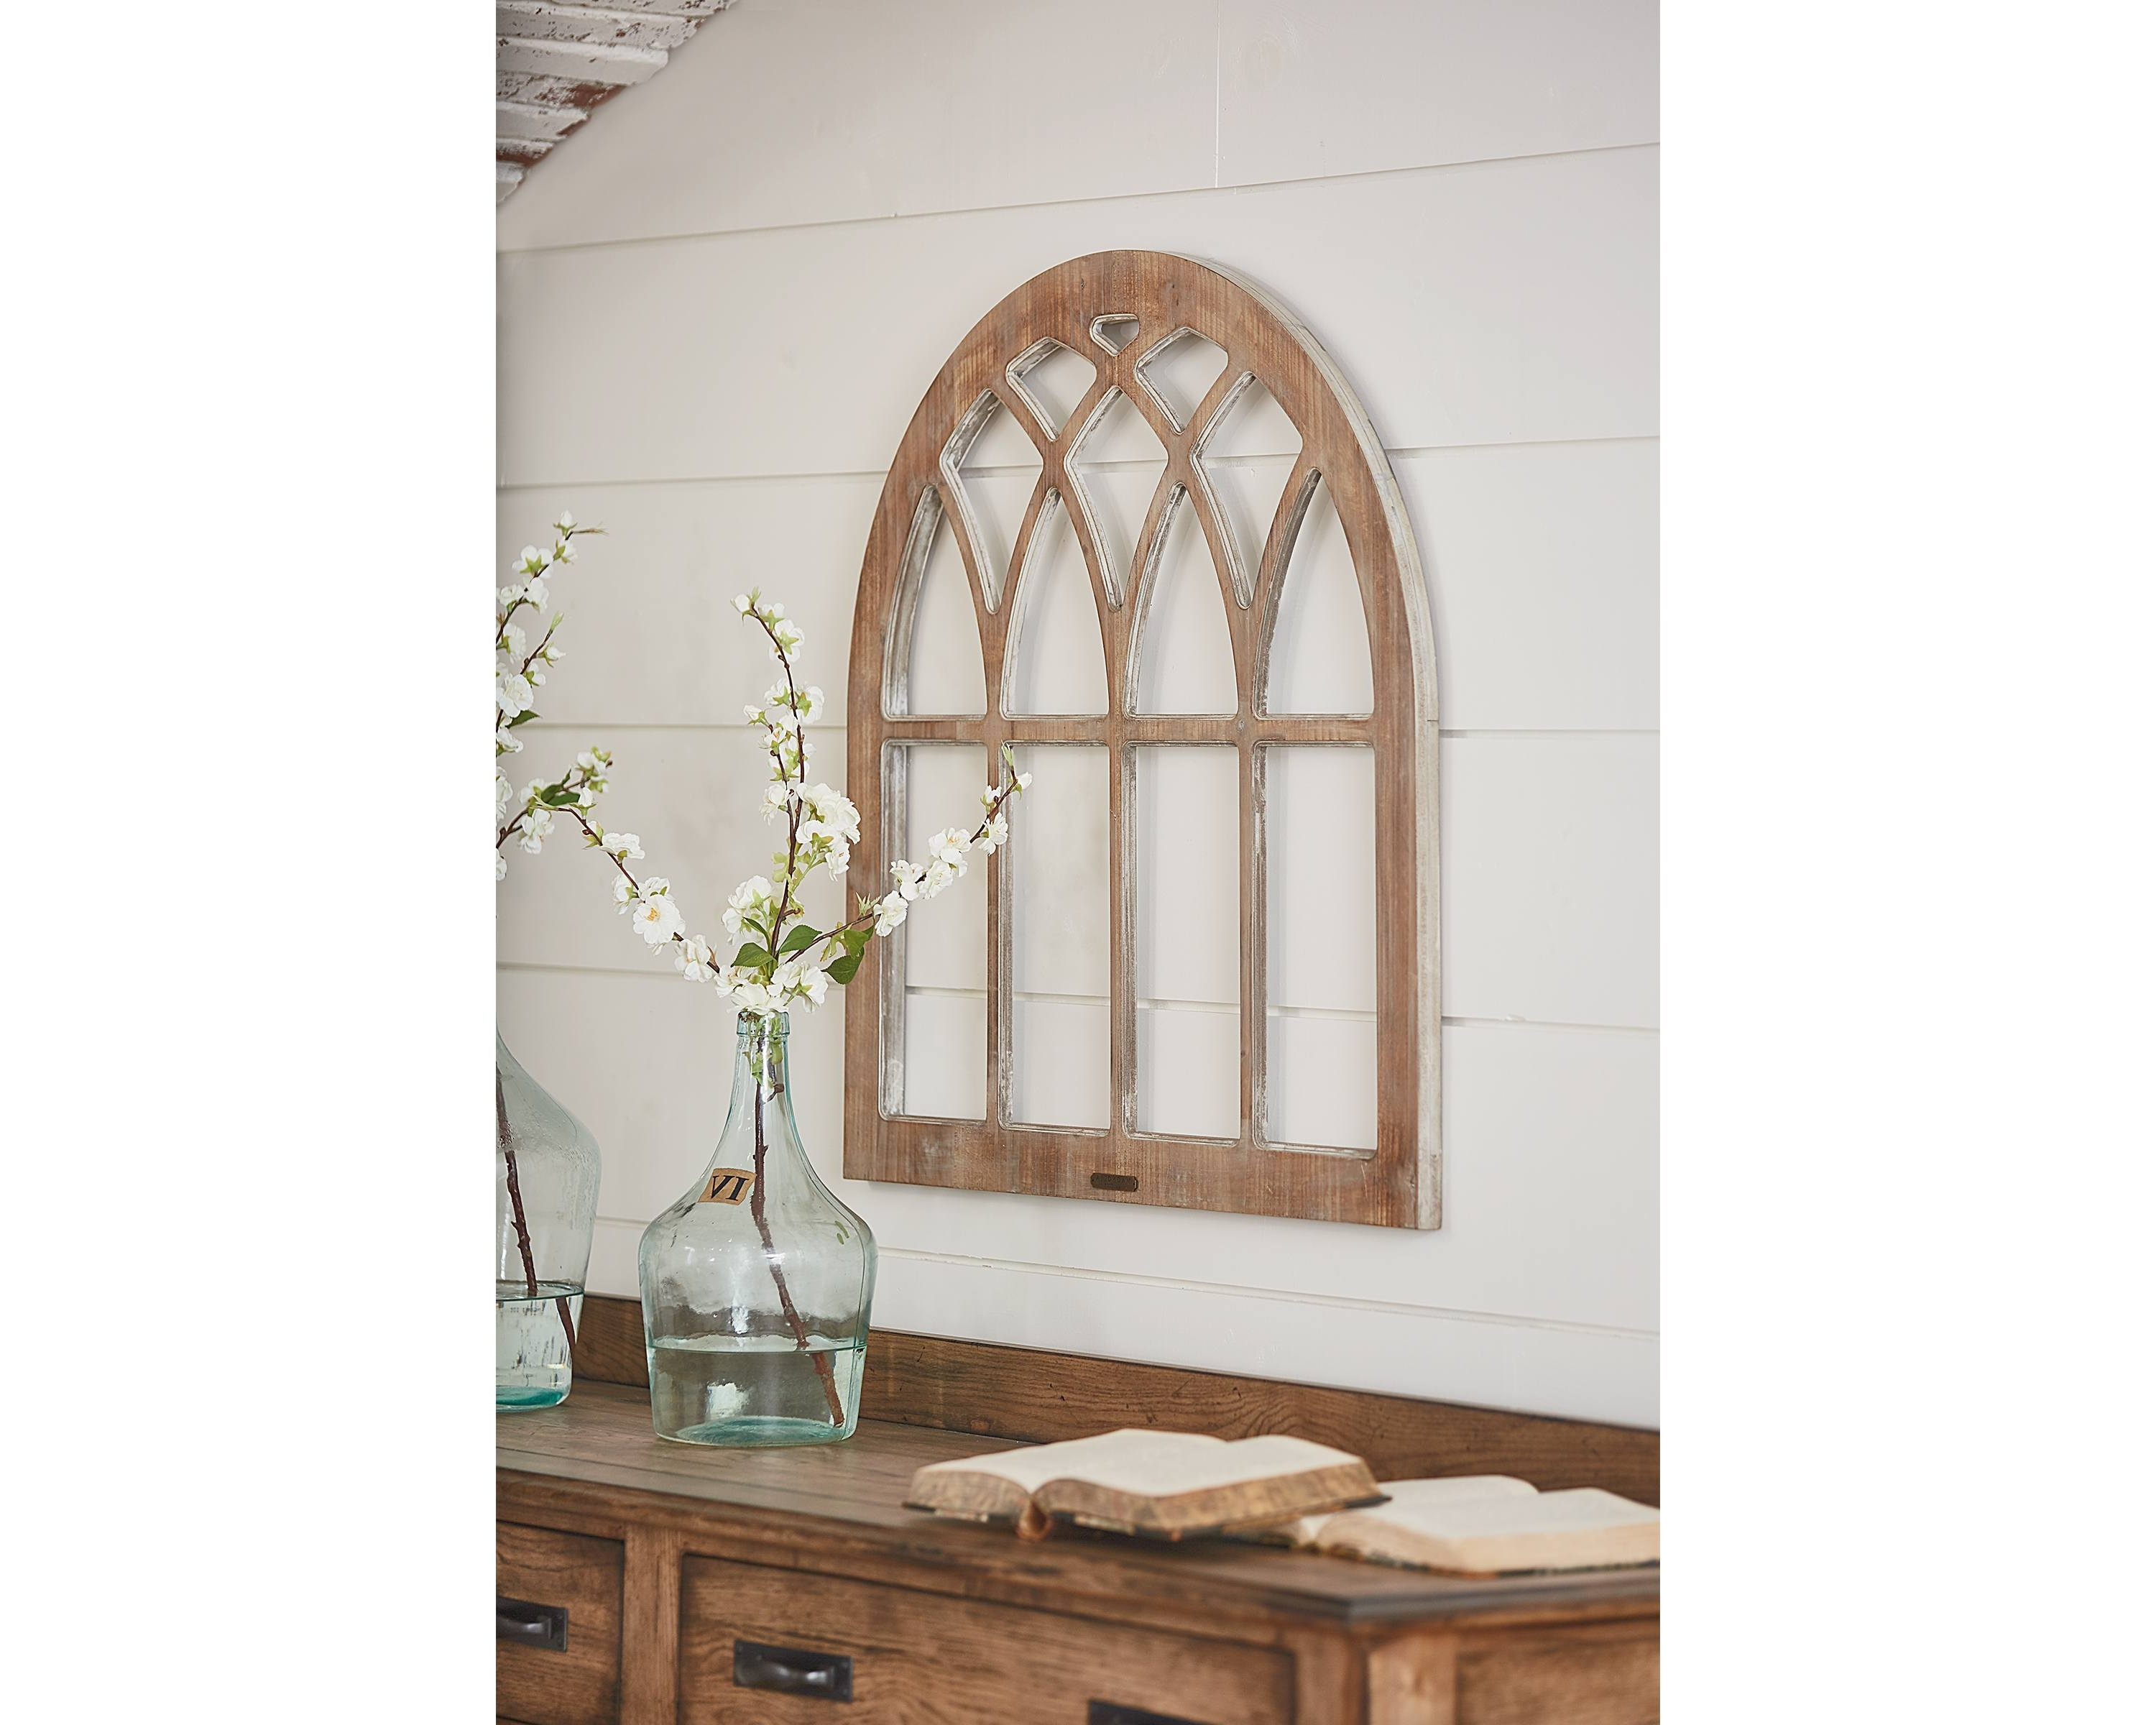 Fashionable Cathedral Window Frame Wall Decor - Magnolia Home within Window Frame Wall Art